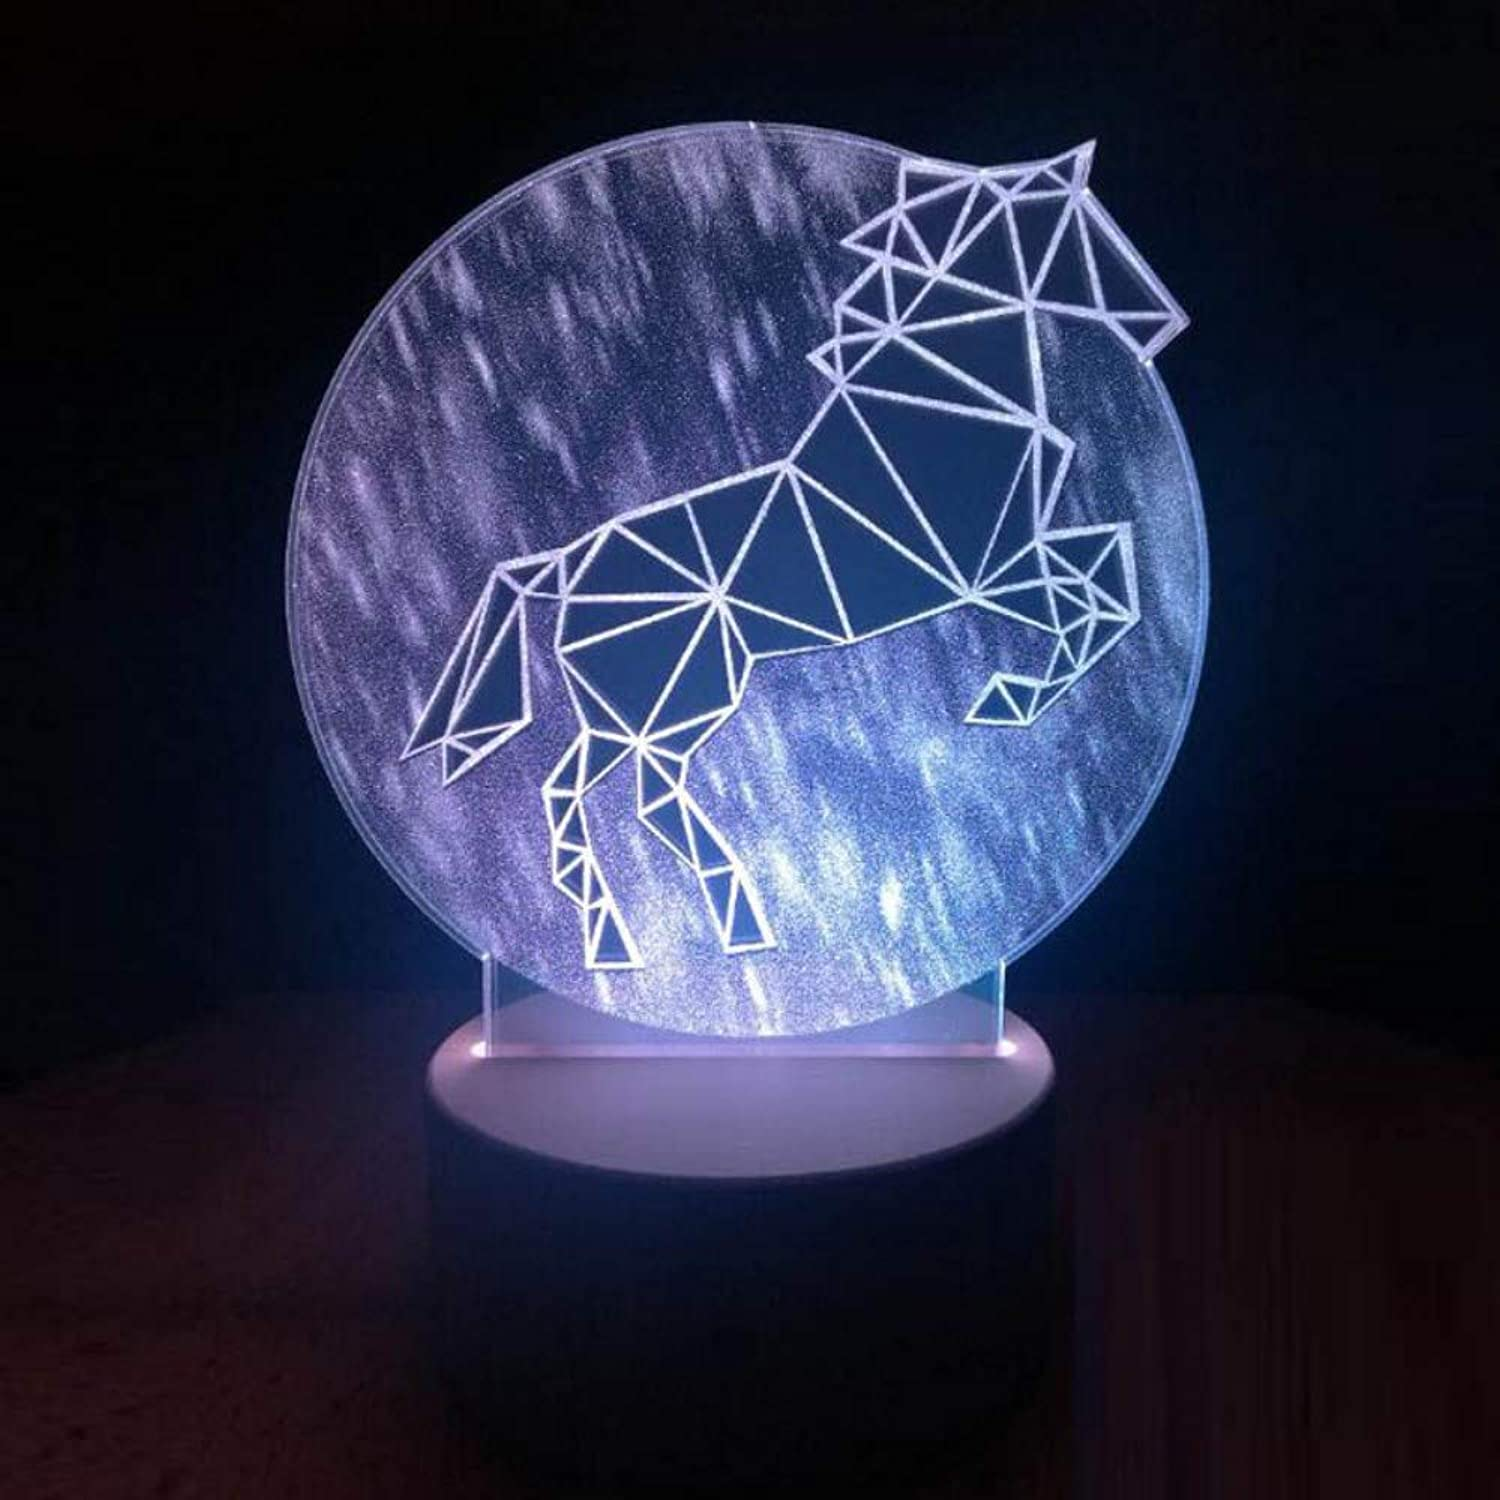 ACED Passing Through time 3D Illusion Illusion Illusion Light Creative Gift Table Lamp Home Decoration Light  3D Night Lights LED Remote  Night Light USB Charger with Remote,Sweaty BMW B07PLFDLP7  | Neue Sorten werden eingeführt  380d28